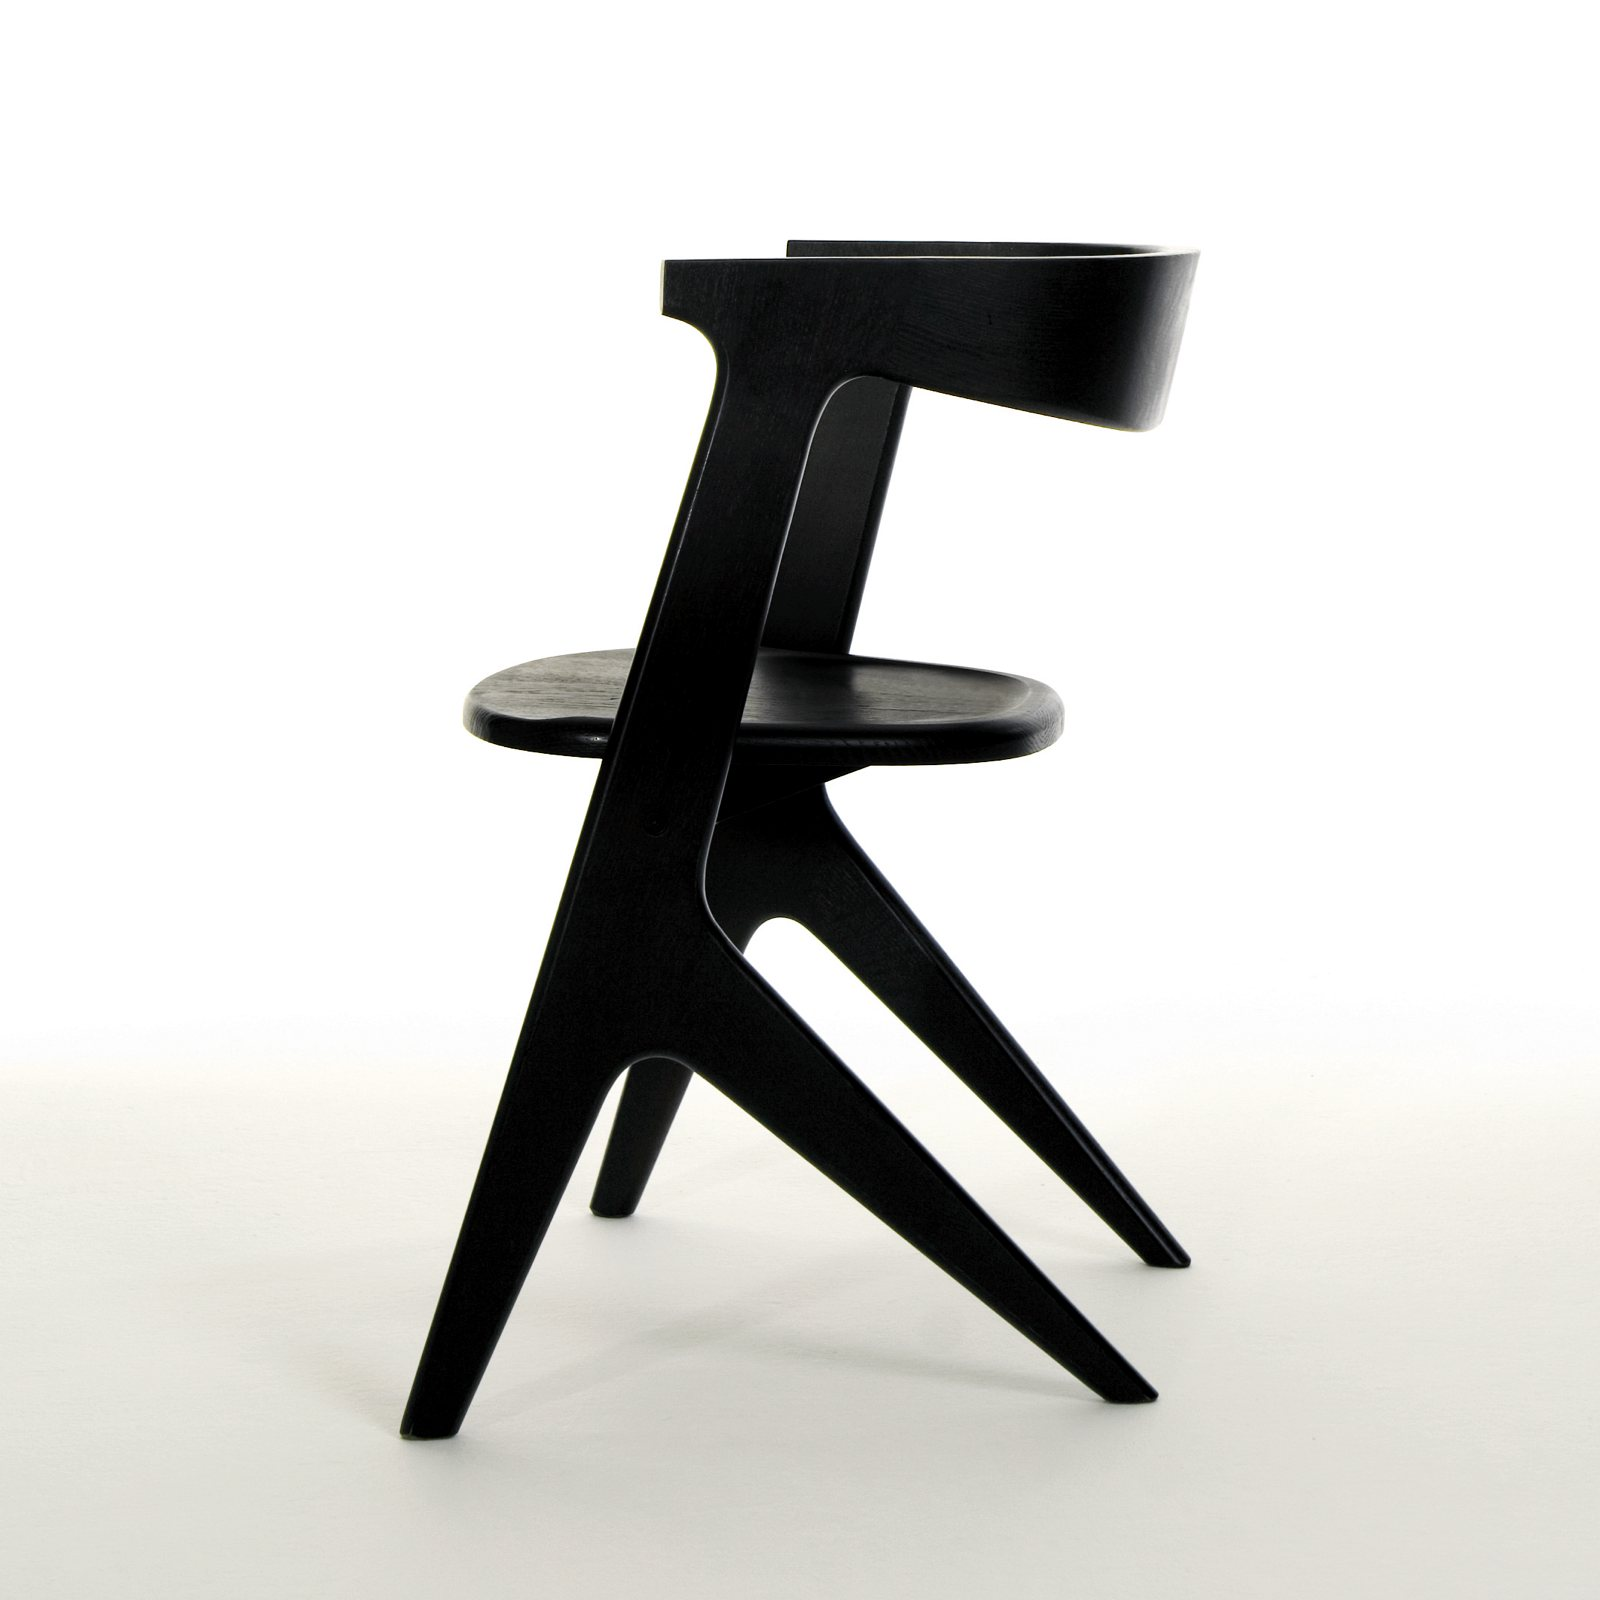 Sensational Slab Chair By Tom Dixon Up Interiors Gmtry Best Dining Table And Chair Ideas Images Gmtryco